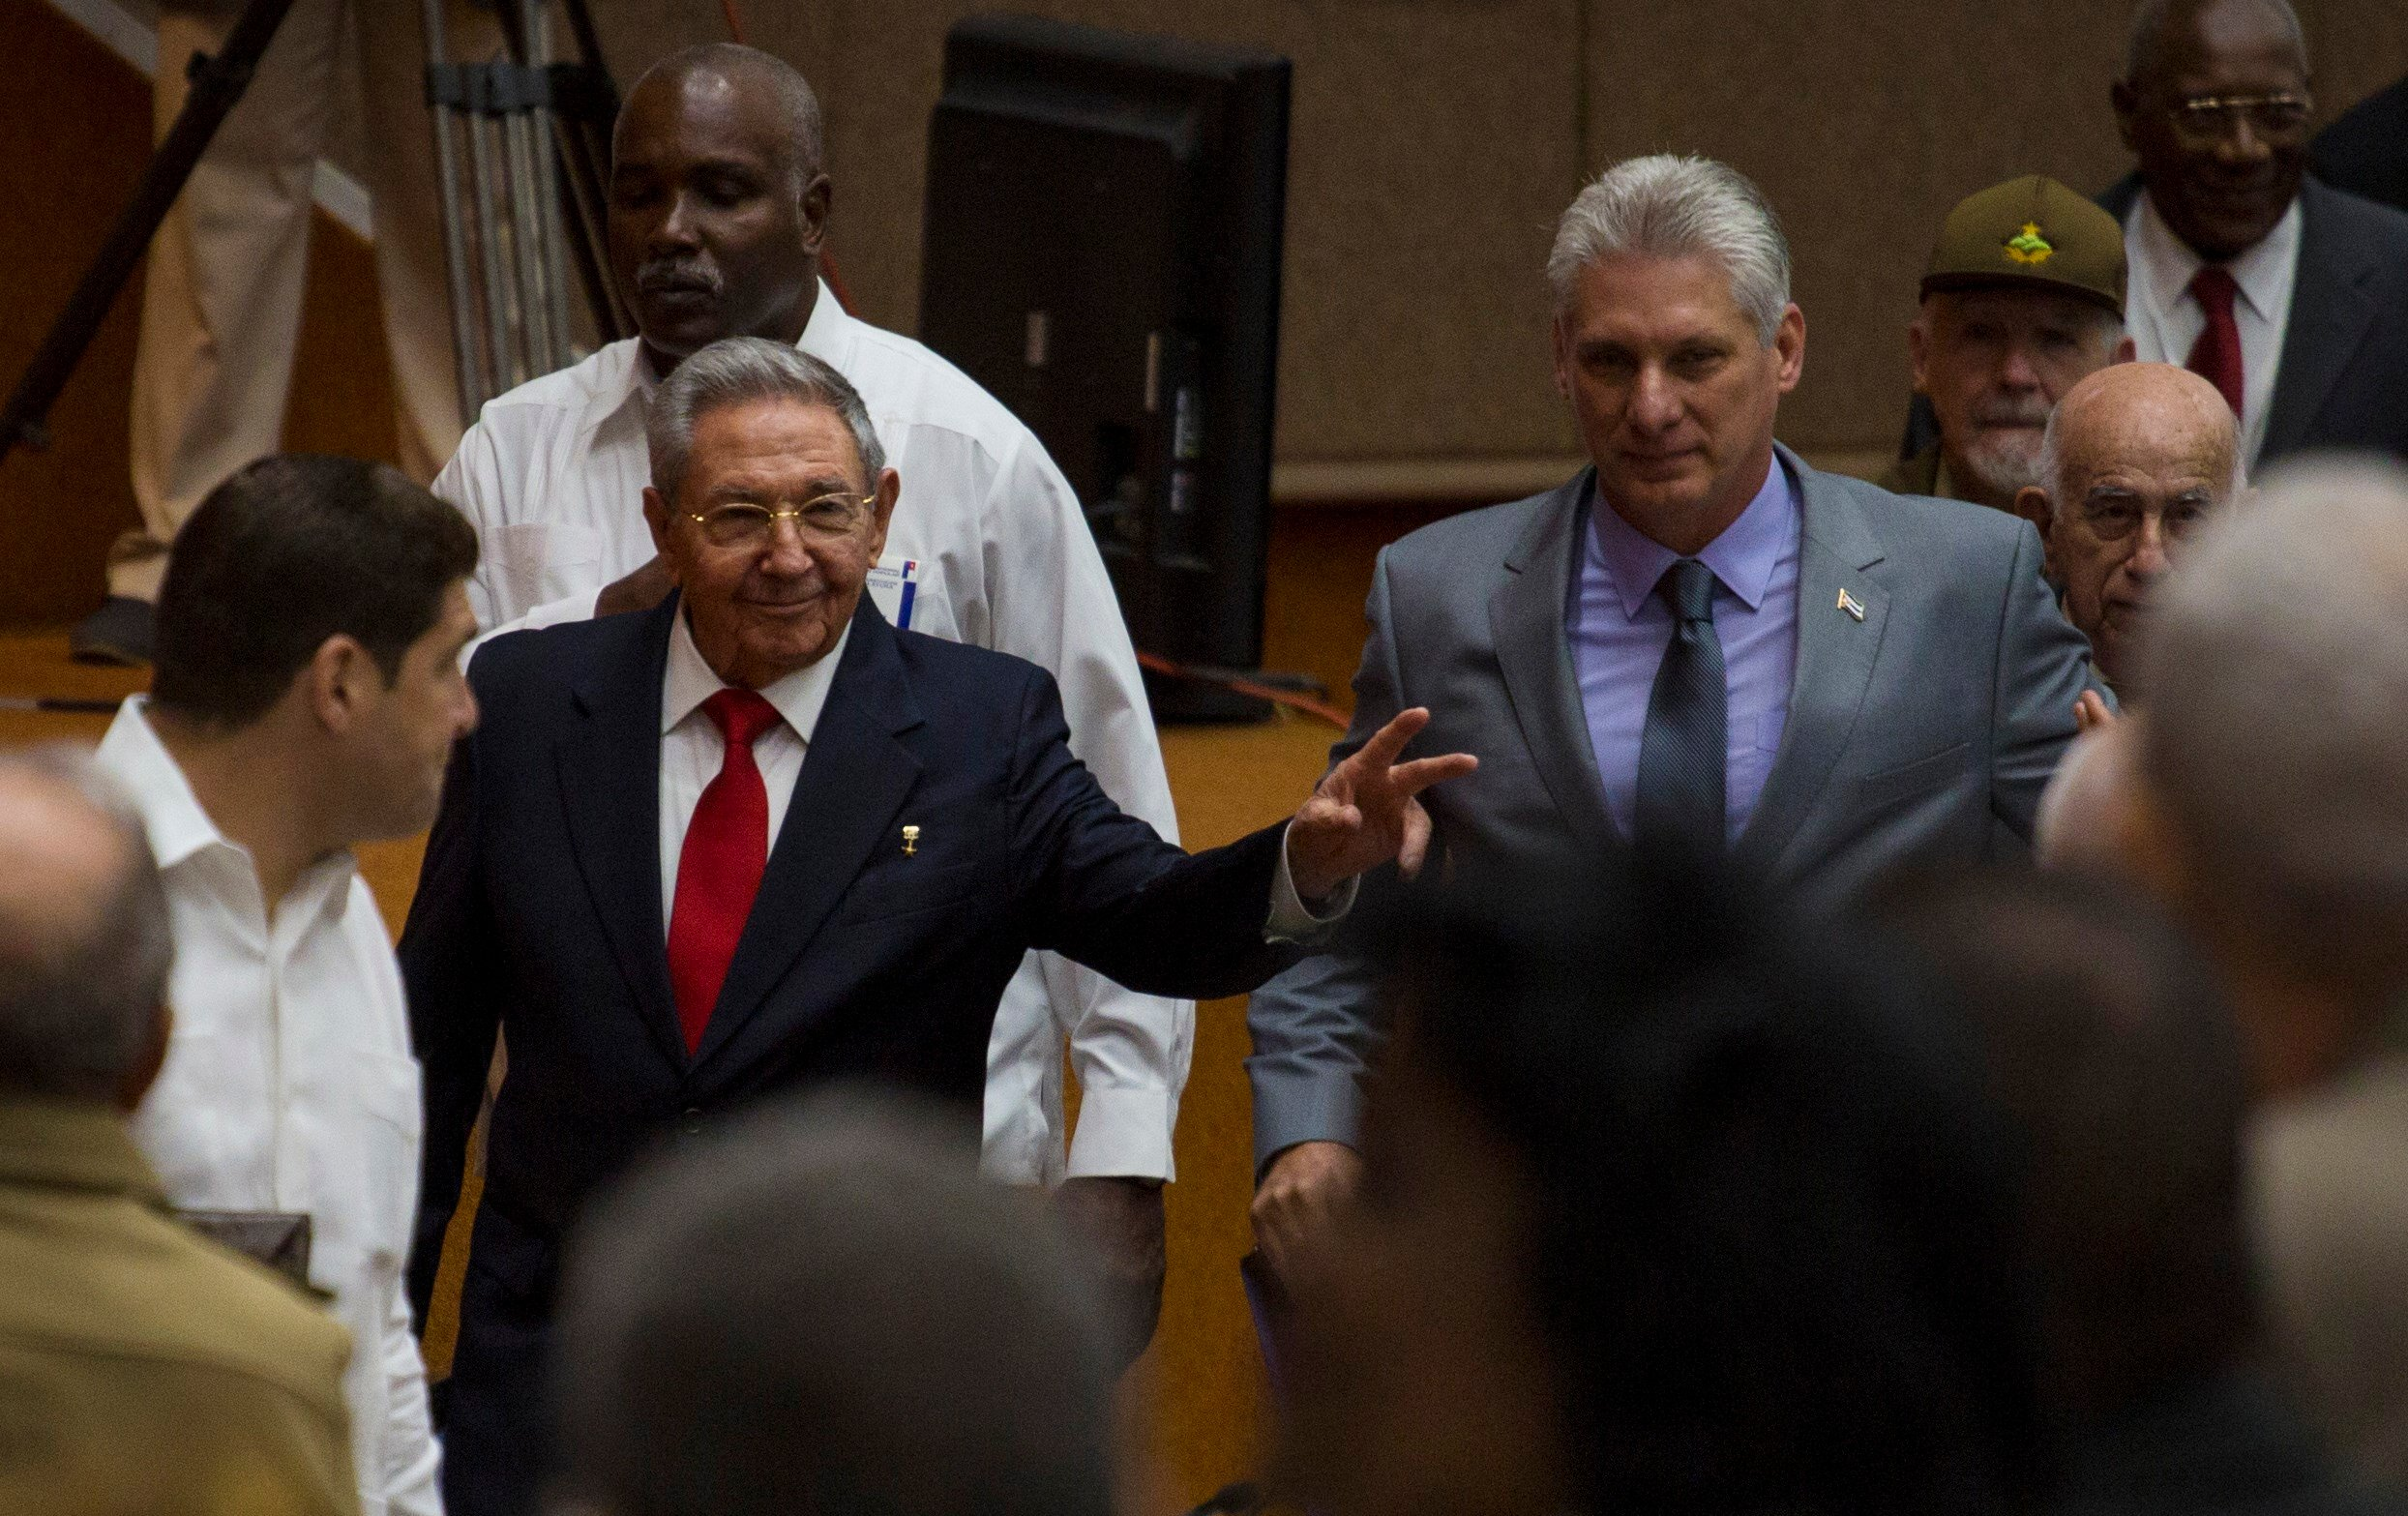 In this photo released by Cuba's state-run media Cubadebate, Cuba's President Raul Castro, center left, enters the National Assembly followed by his successor Miguel Diaz-Canel, center right. (Irene Perez/Cubadebate via AP)